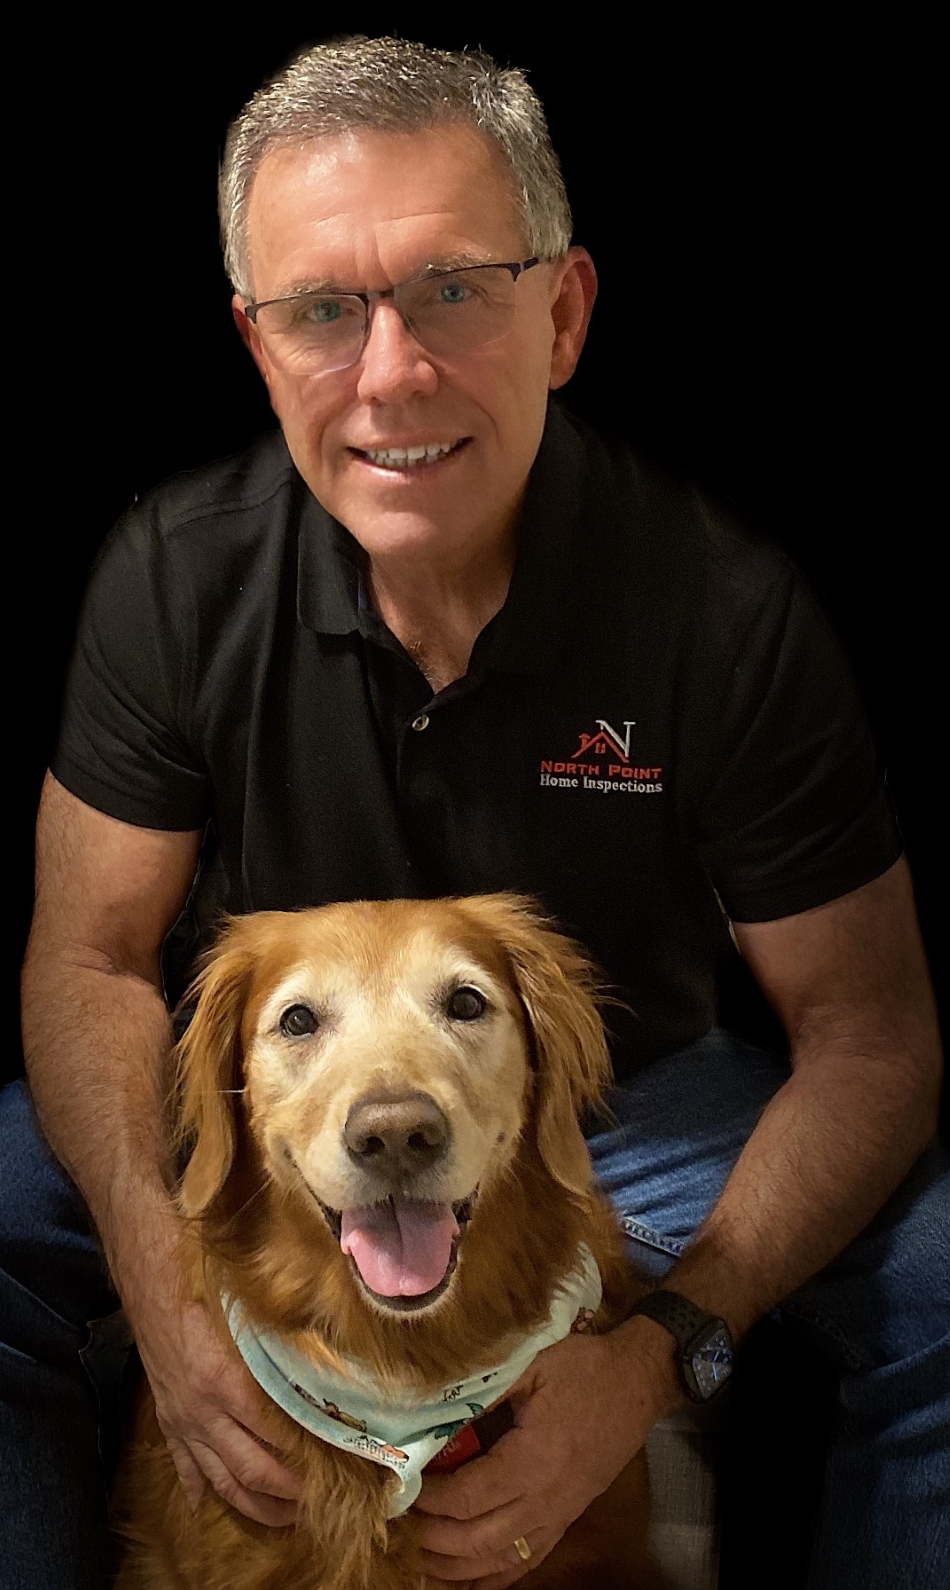 ASHI Certified Home Inspector Jeff Bates